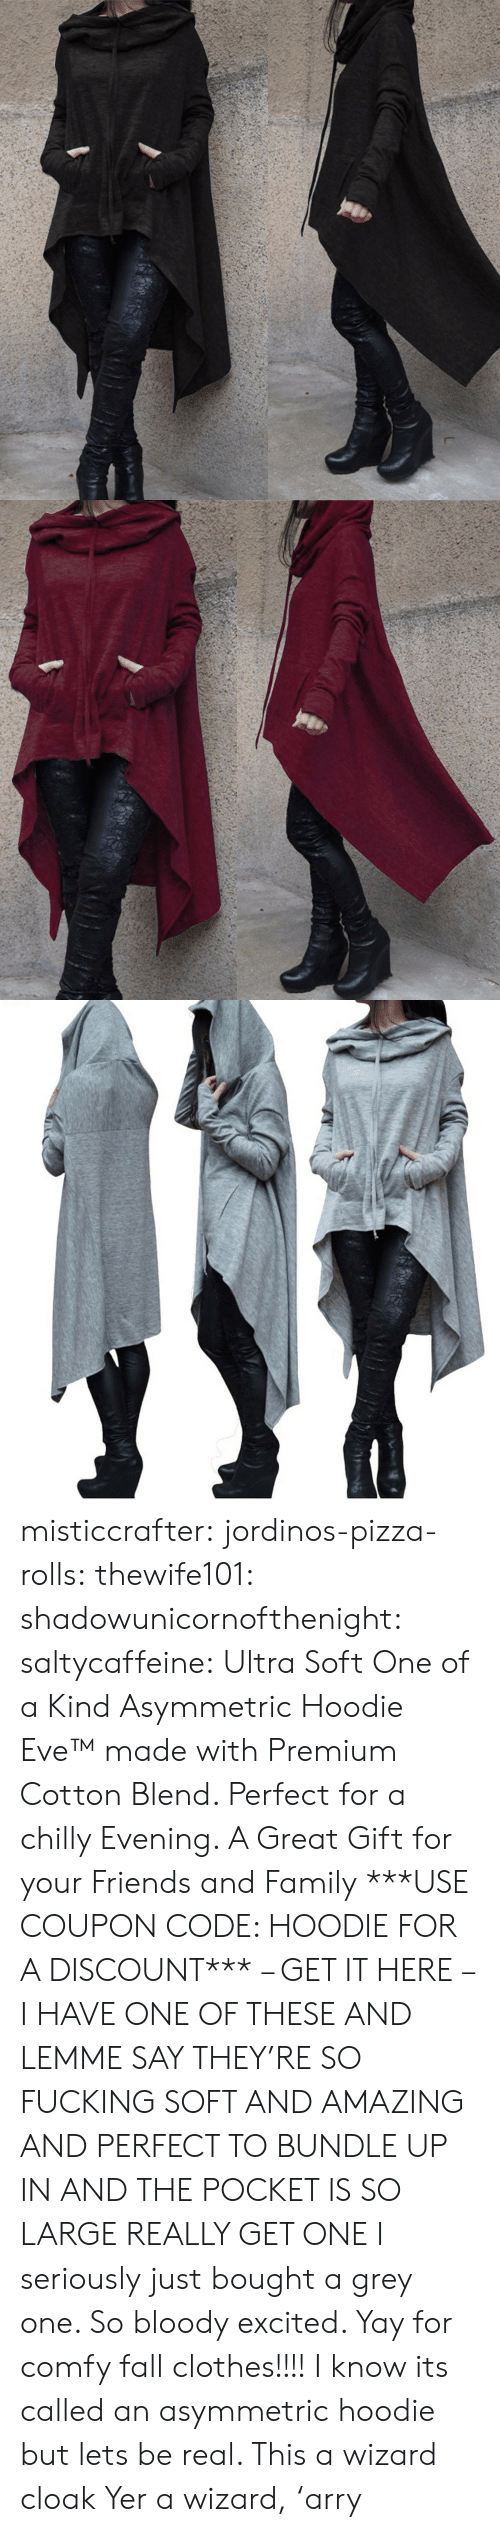 yer: misticcrafter: jordinos-pizza-rolls:  thewife101:  shadowunicornofthenight:  saltycaffeine:  Ultra Soft One of a Kind Asymmetric Hoodie Eve™made with Premium Cotton Blend. Perfect for a chilly Evening. A Great Gift for your Friends and Family ***USE COUPON CODE: HOODIE FOR A DISCOUNT*** – GET IT HERE –   I HAVE ONE OF THESE AND LEMME SAY THEY'RE SO FUCKING SOFT AND AMAZING AND PERFECT TO BUNDLE UP IN AND THE POCKET IS SO LARGE REALLY GET ONE   I seriously just bought a grey one. So bloody excited. Yay for comfy fall clothes!!!!    I know its called an asymmetric hoodie but lets be real. This a wizard cloak  Yer a wizard,'arry